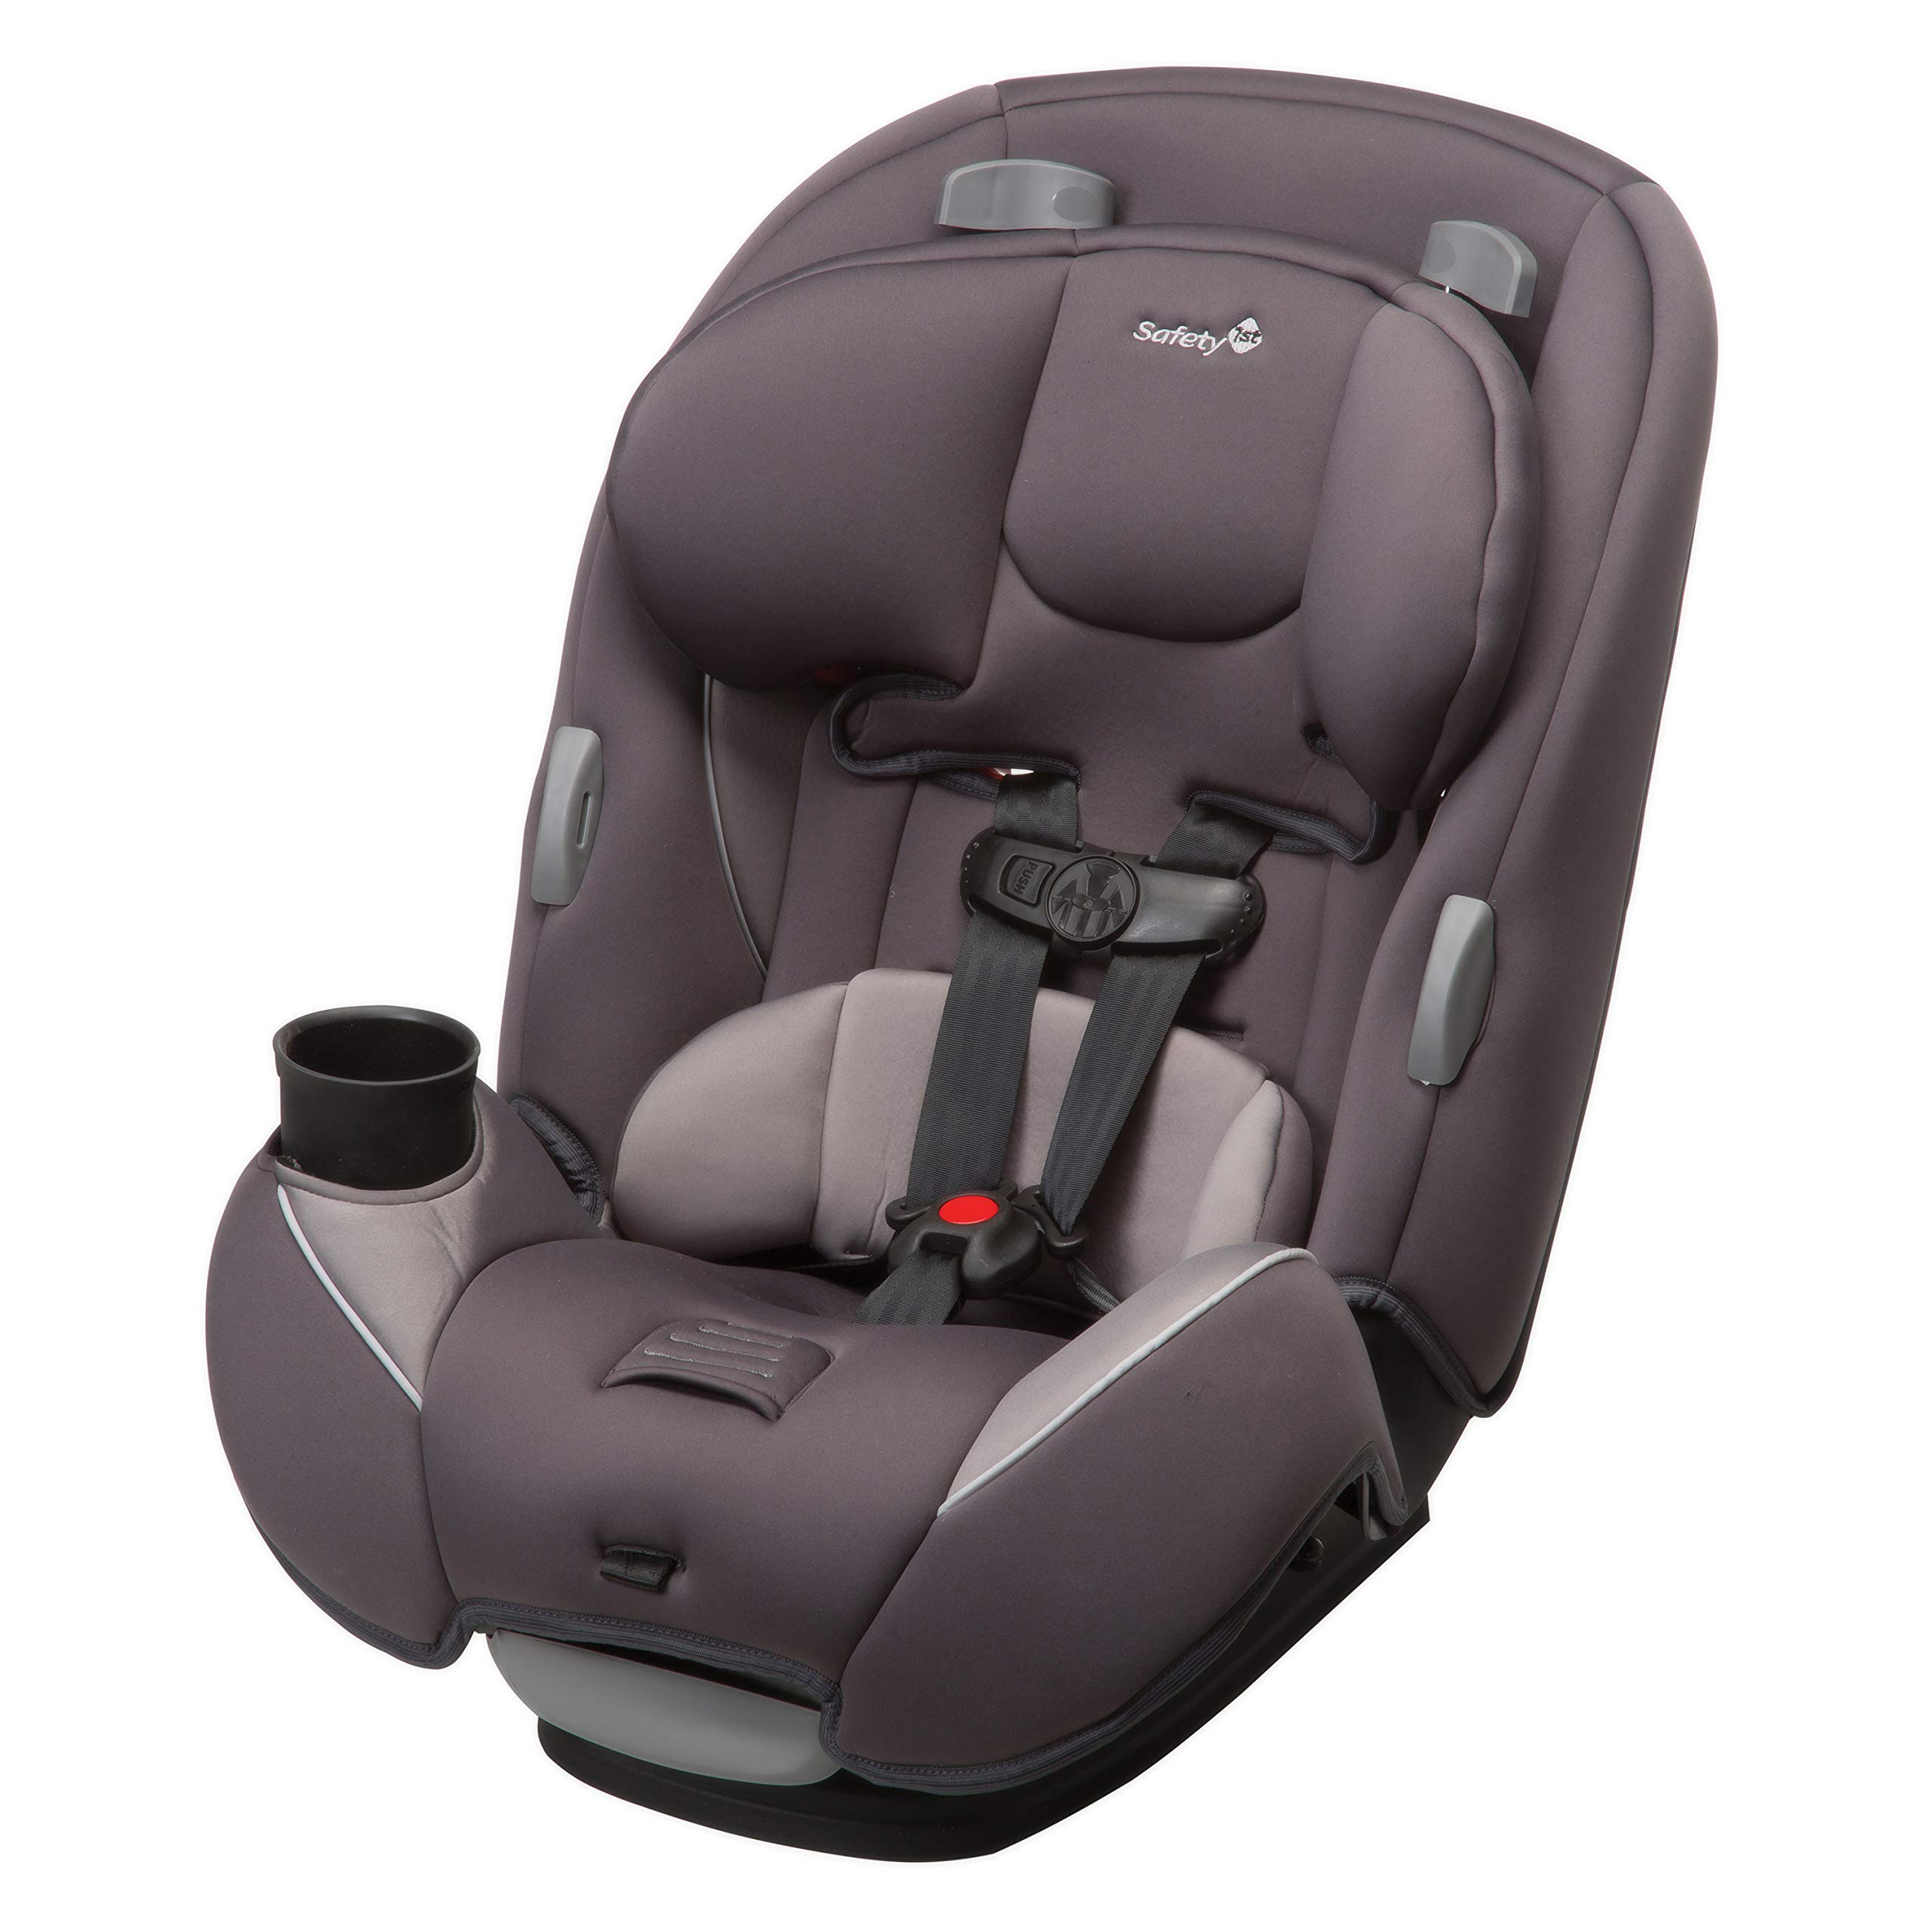 7049602bbdb61 Amazon.com   Safety 1st Continuum 3-in-1 Convertible Car Seat ...